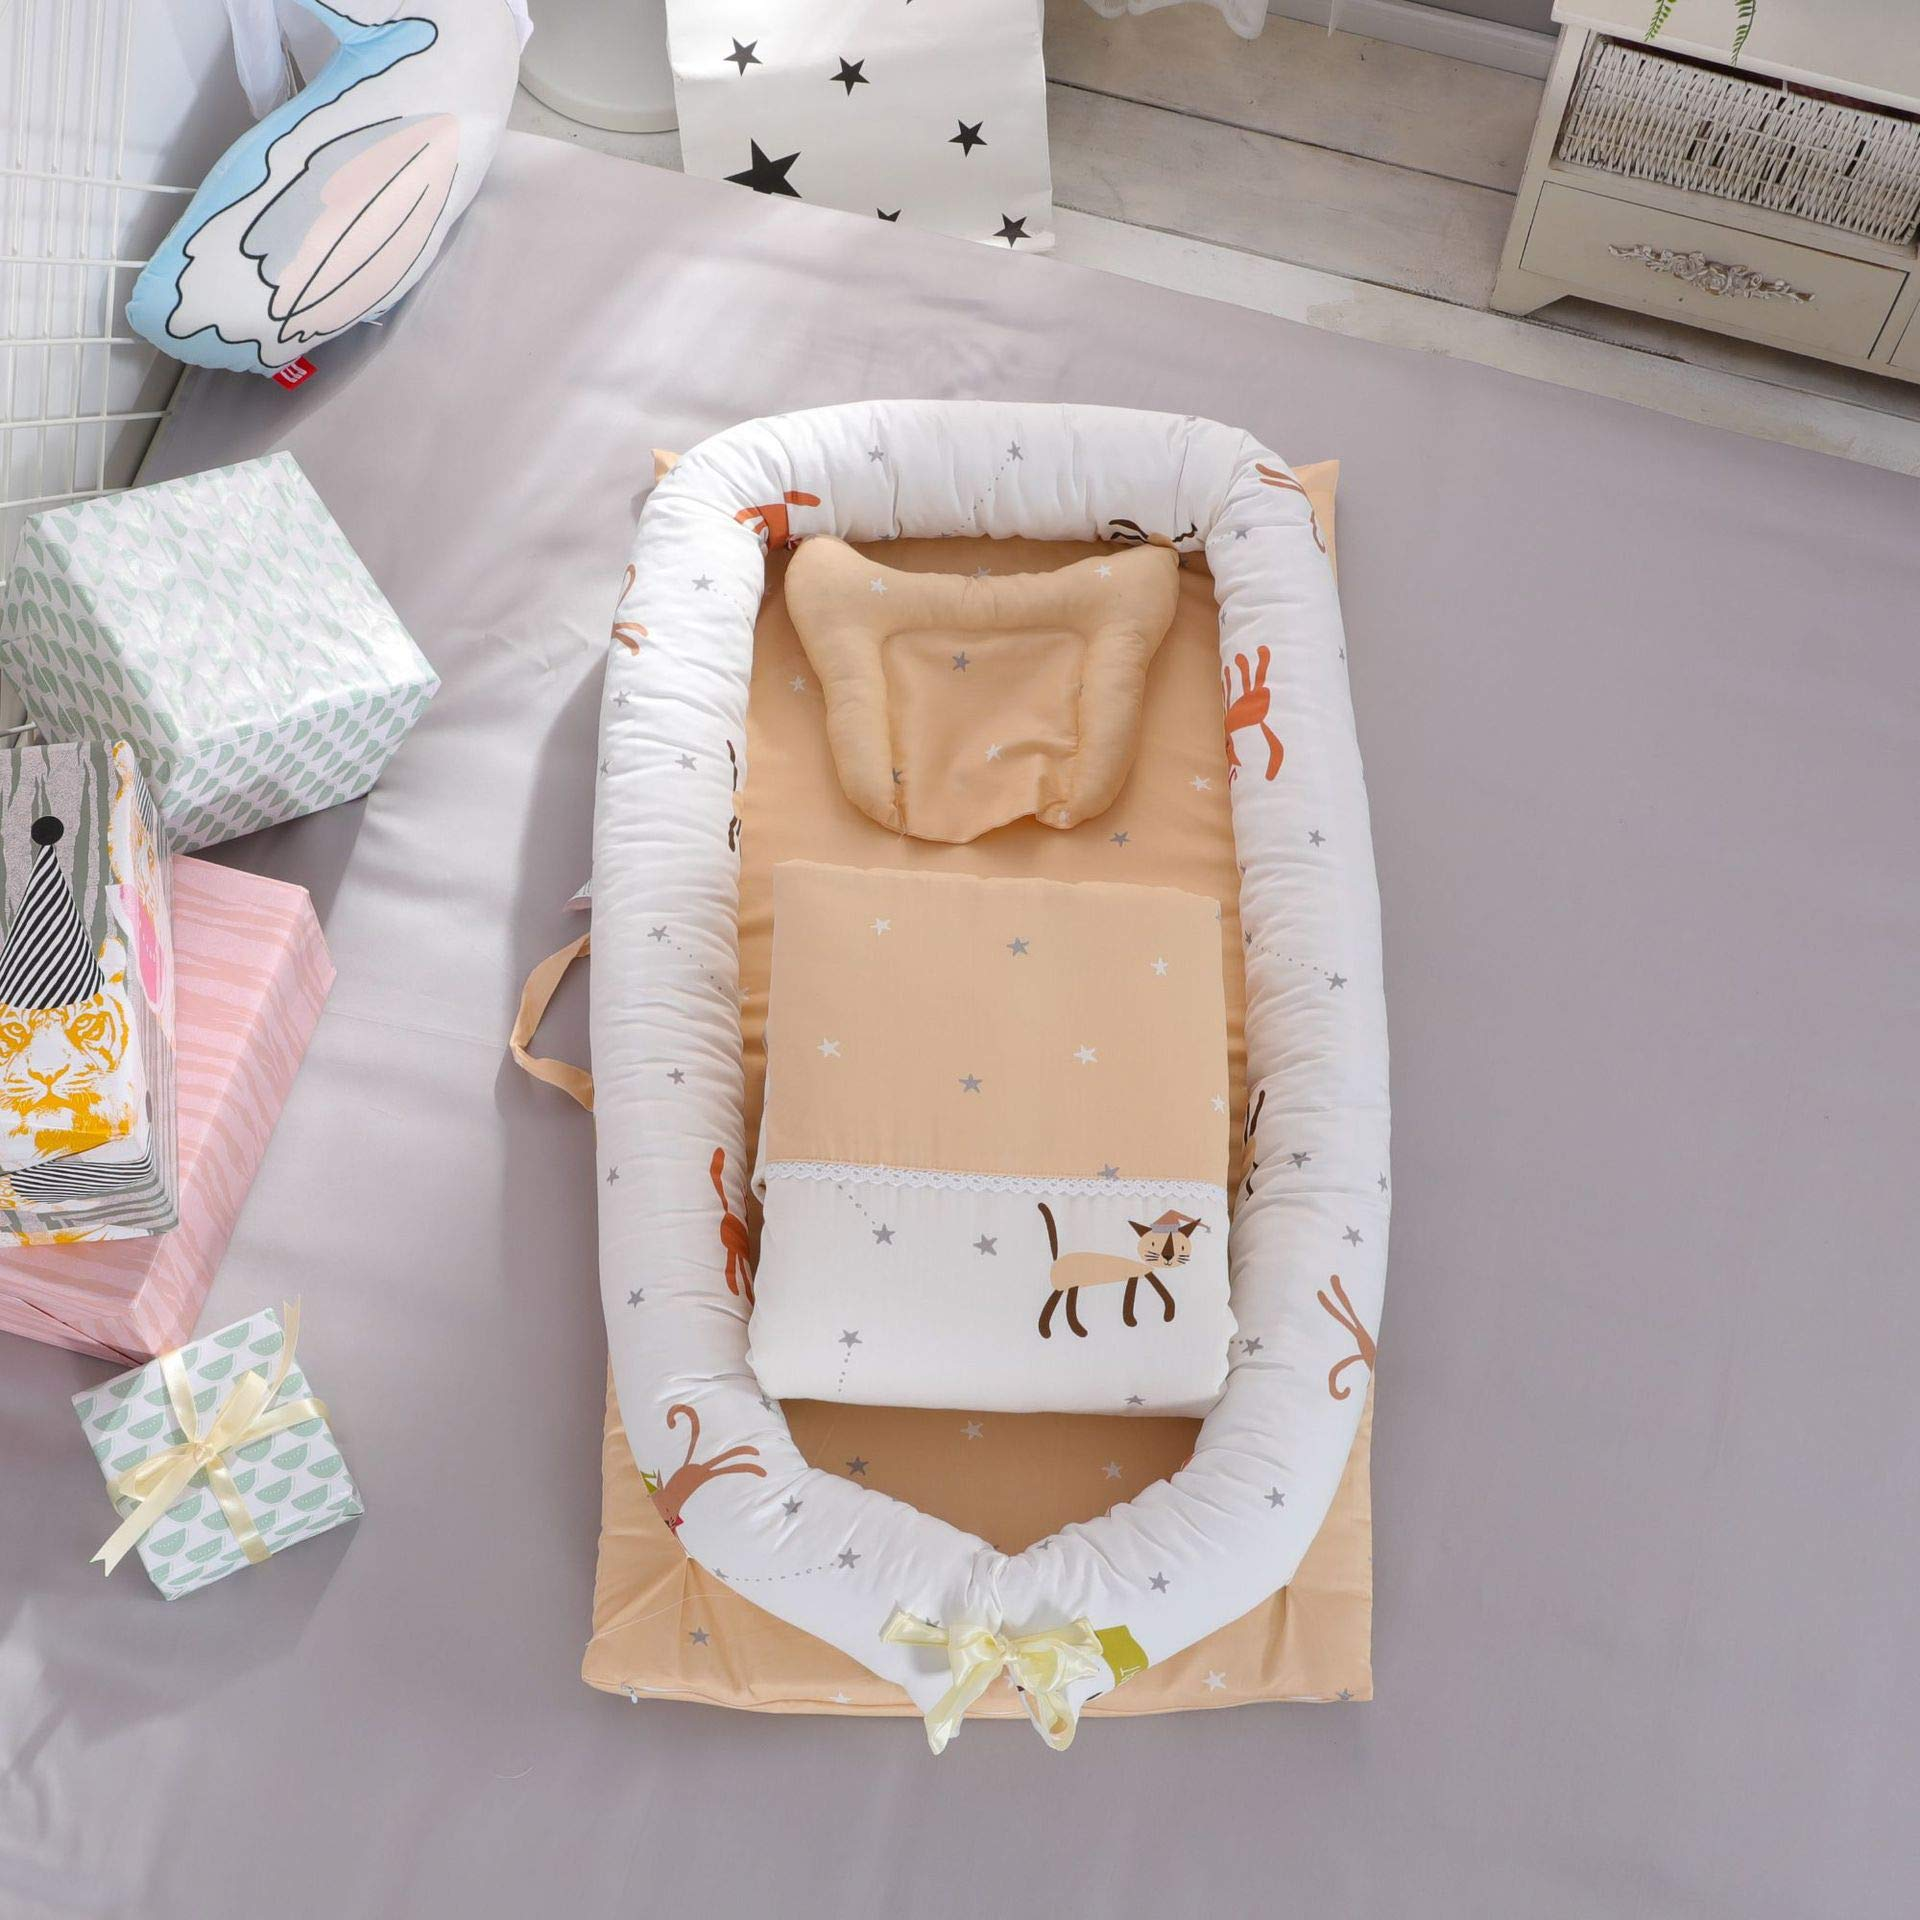 Baby Bassinet for Bed Portable Baby Lounger for Newborn,100% Cotton Newborn Portable Crib,Breathable and Hypoallergenic Sleep Nest Newborn Lounger Pillow for Bedroom/Travel Cat by JHion